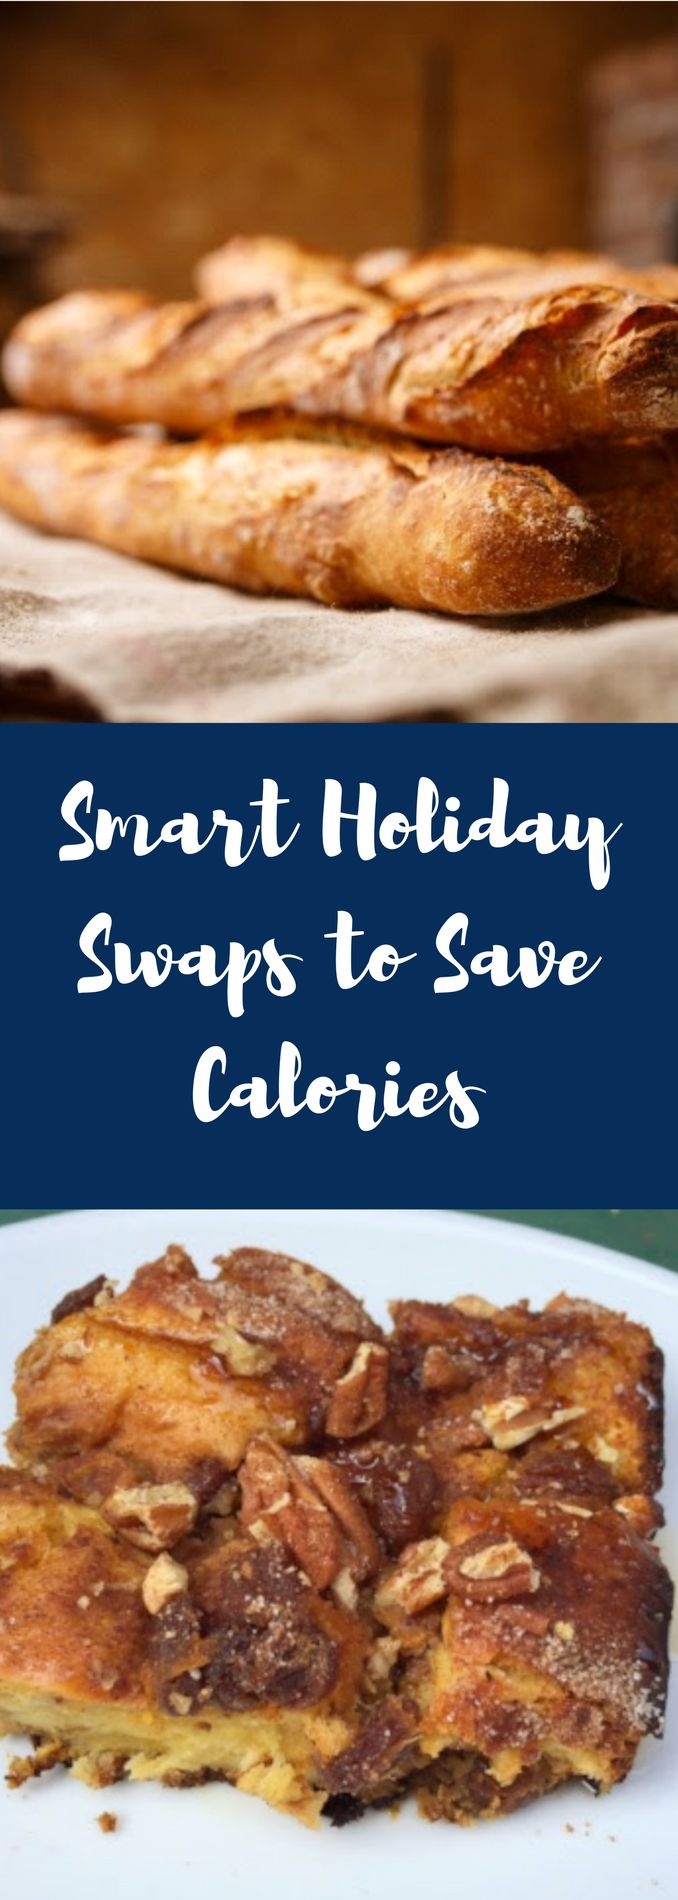 Looking to save calories over the holidays for weightloss! #weightloss #healthyholiday #challenge